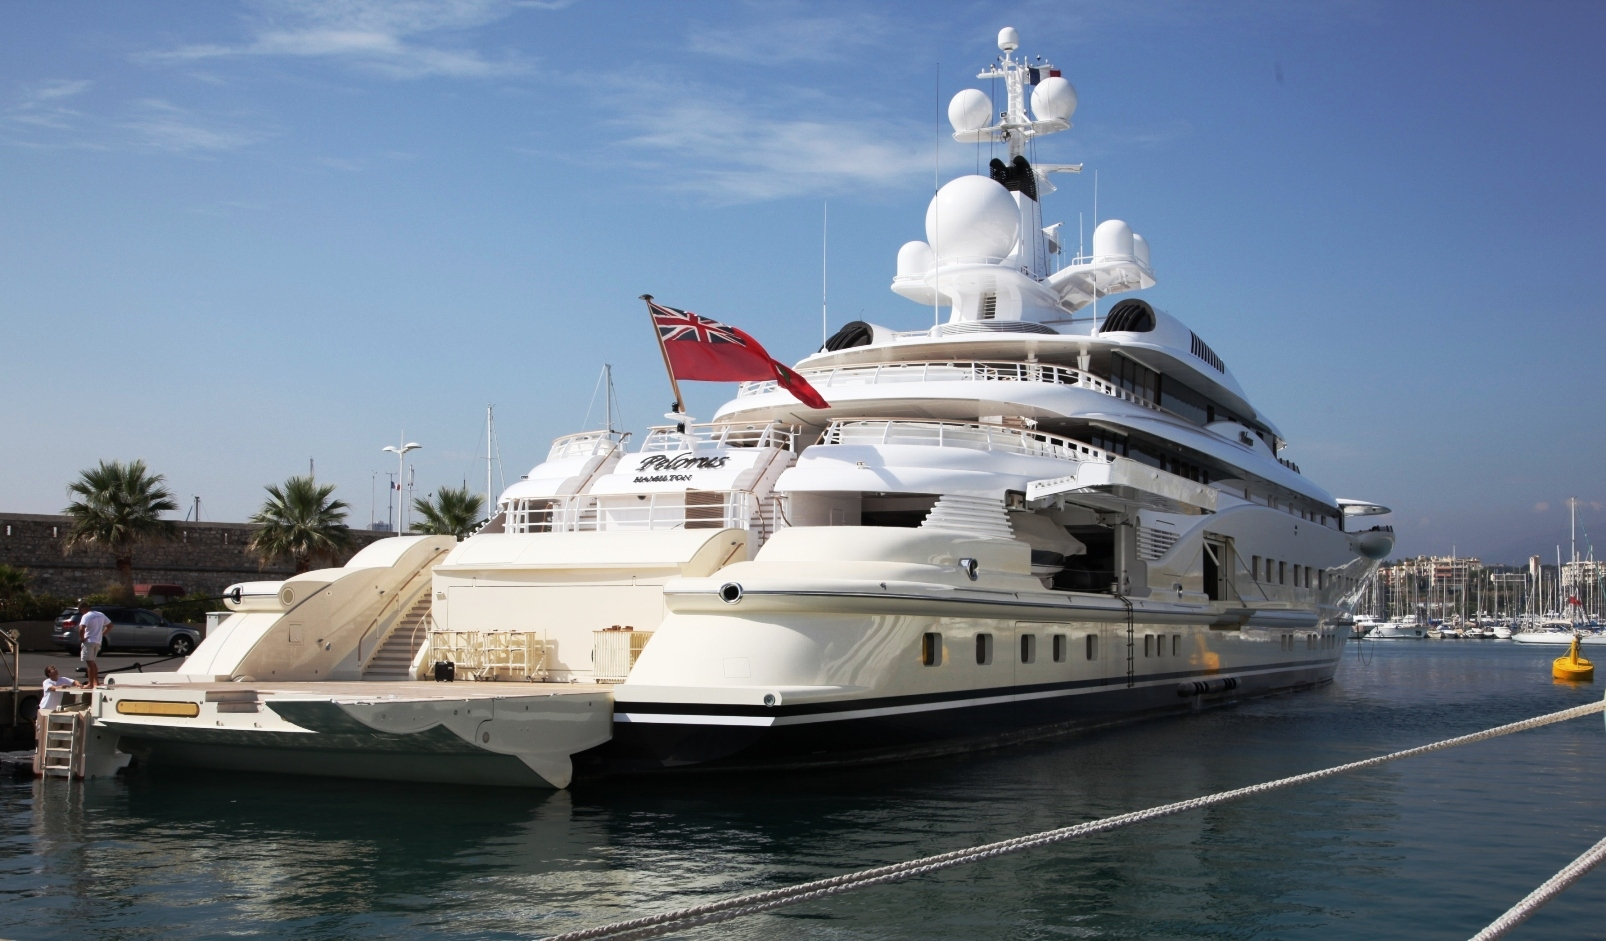 Superyacht abramovich  Roman Abramovich Wins Defamation Case Over False Superyacht Claims ...